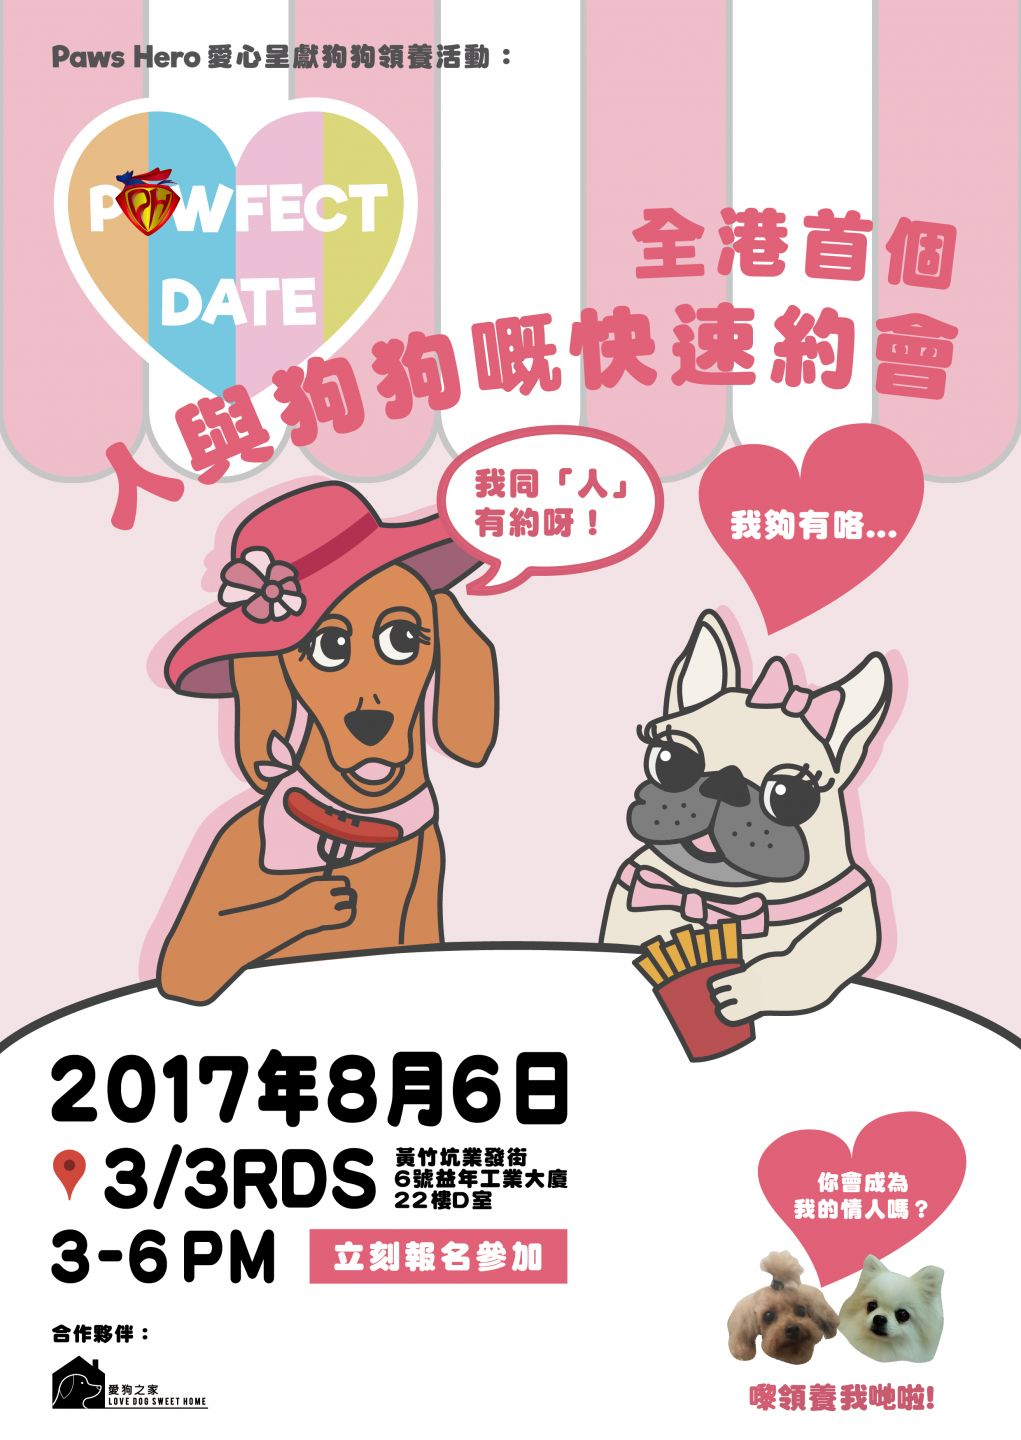 Hong kong speed dating events